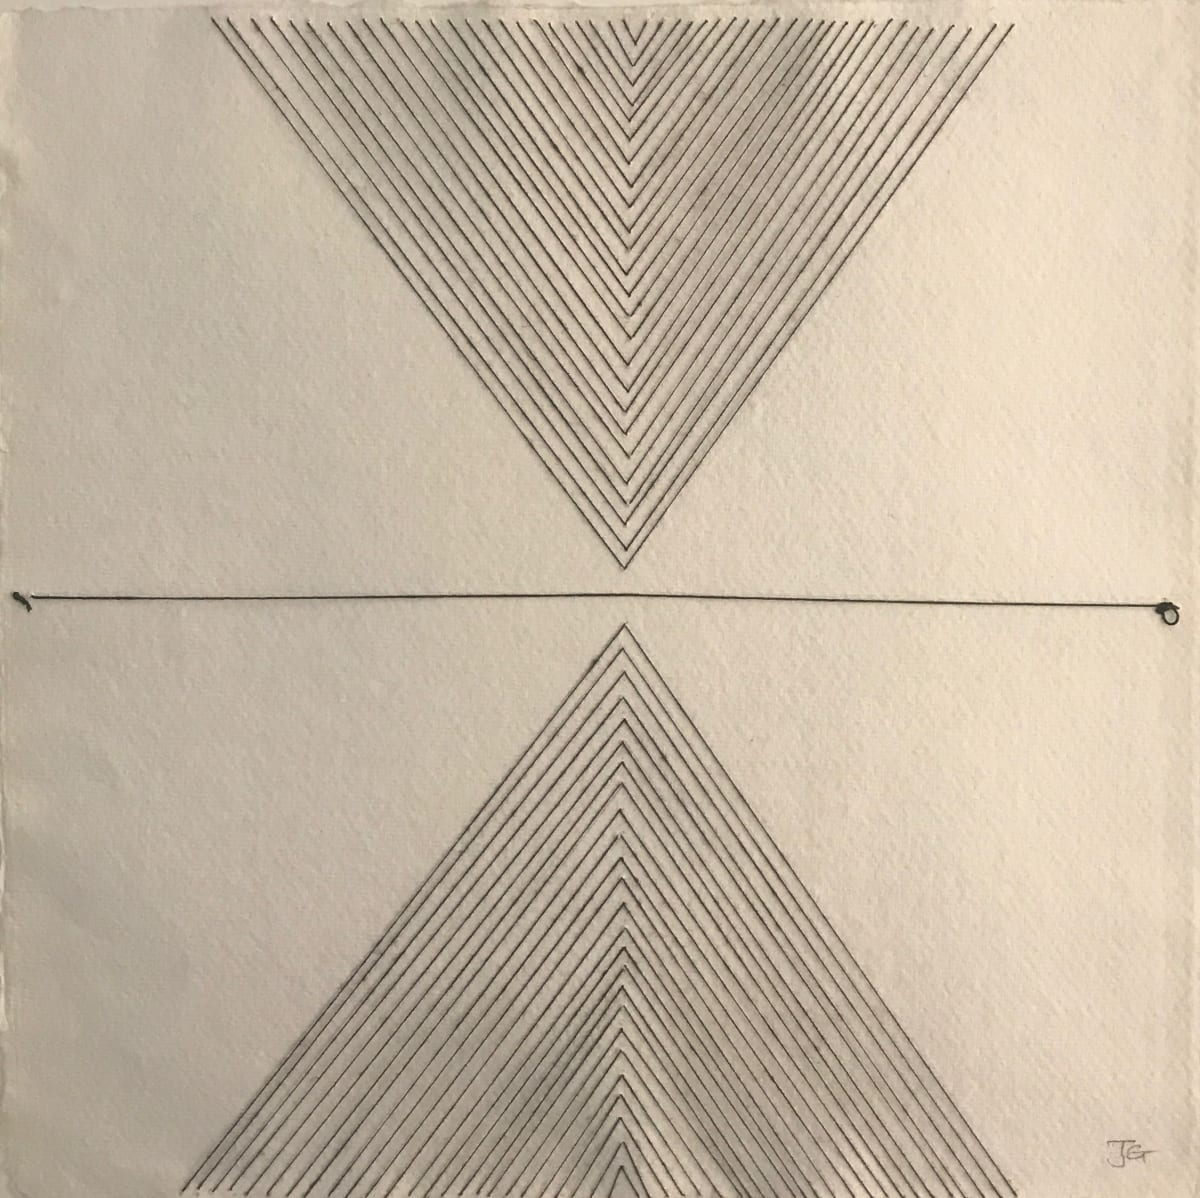 JANE GOODWIN Geometric drawing, 2019 thread on paper 38 x 37 cm 15 x 14 1/2 in initialled